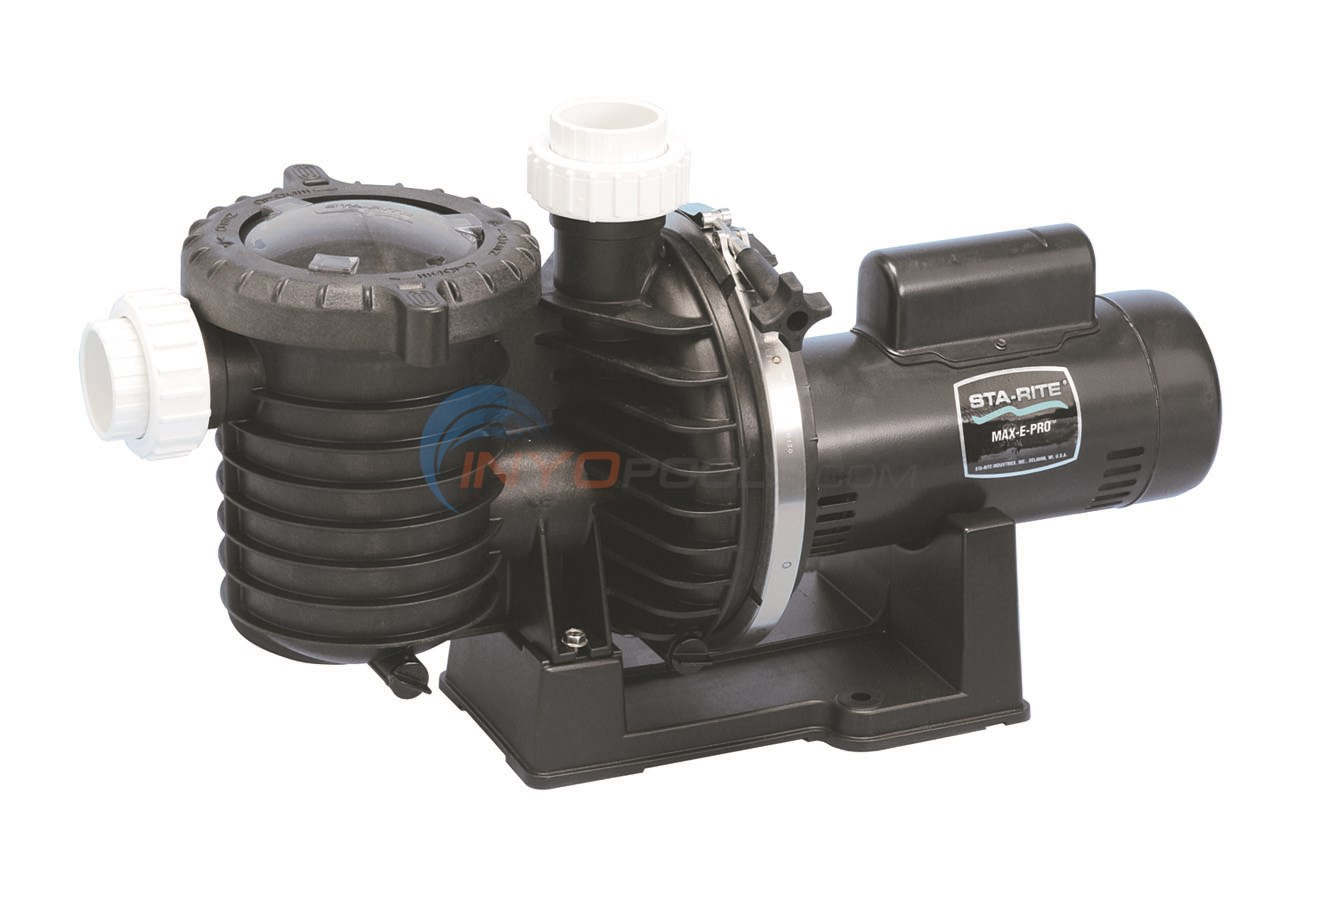 Sta-Rite Max-E-Pro 1 1/2 HP Up Rate Energy Efficient - P6EA6F-206L